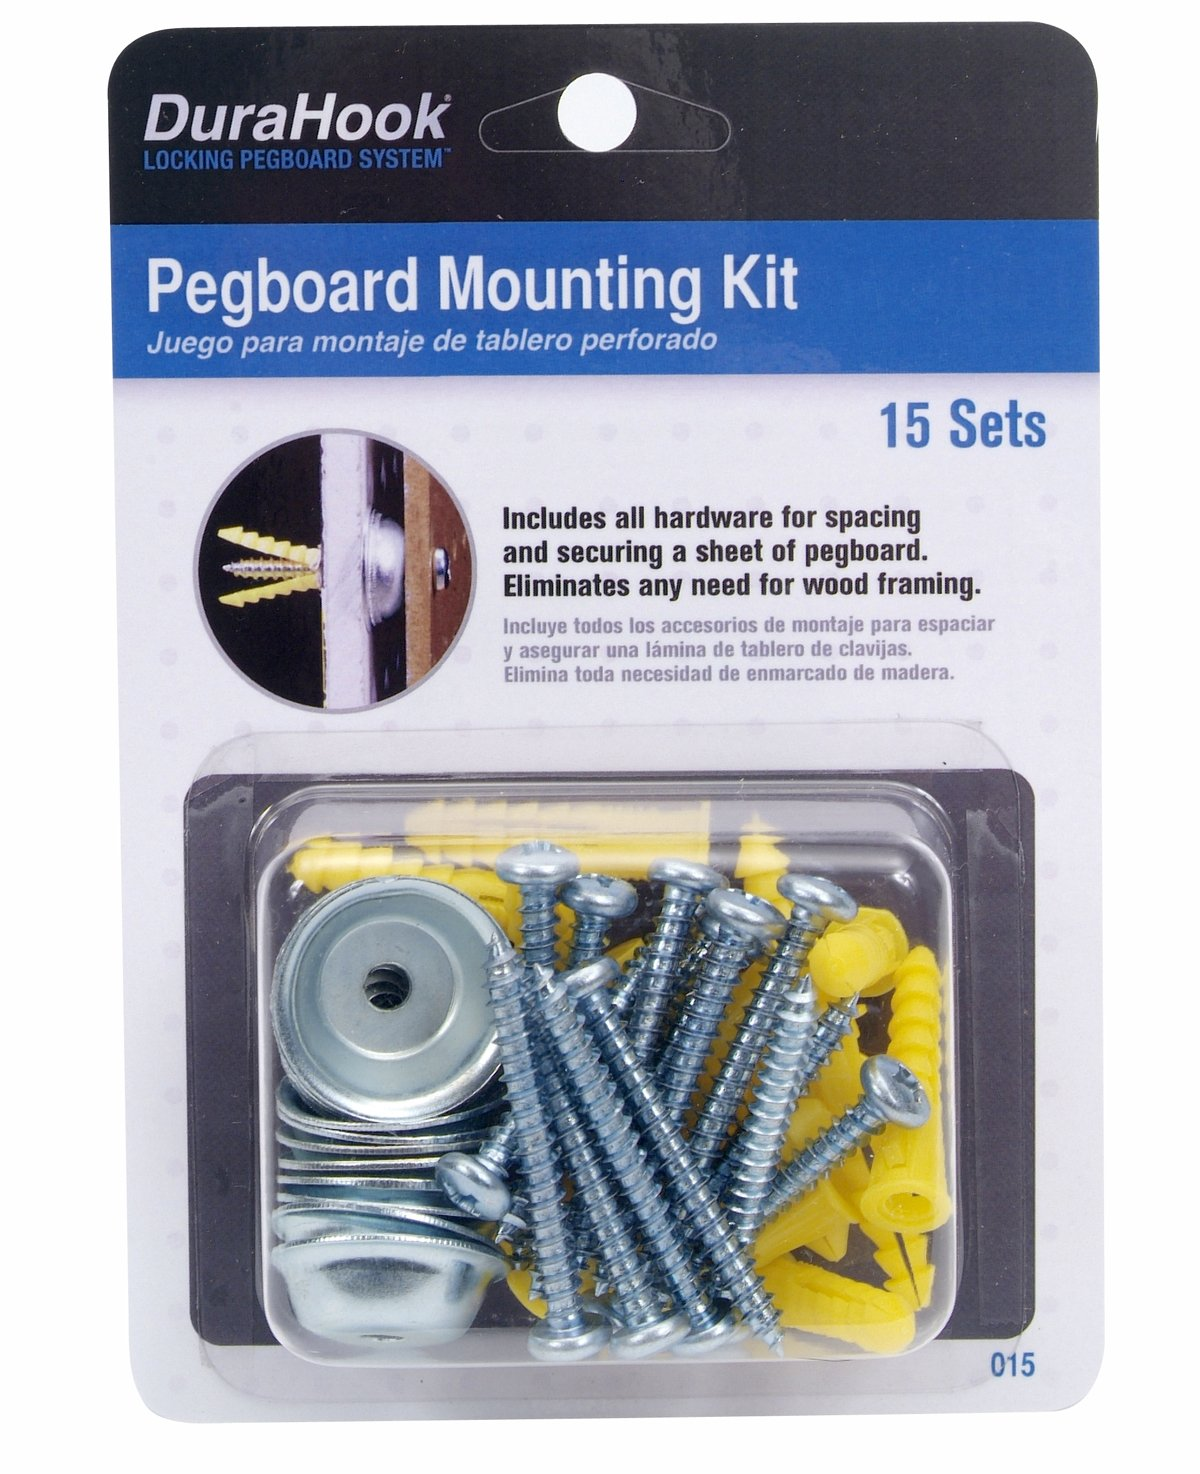 Steel/Plastic Pegboard Mounting & Spacer Kit for DuraBoard or 1/8 In. and 1/4 In. Pegboard, 15 Sets